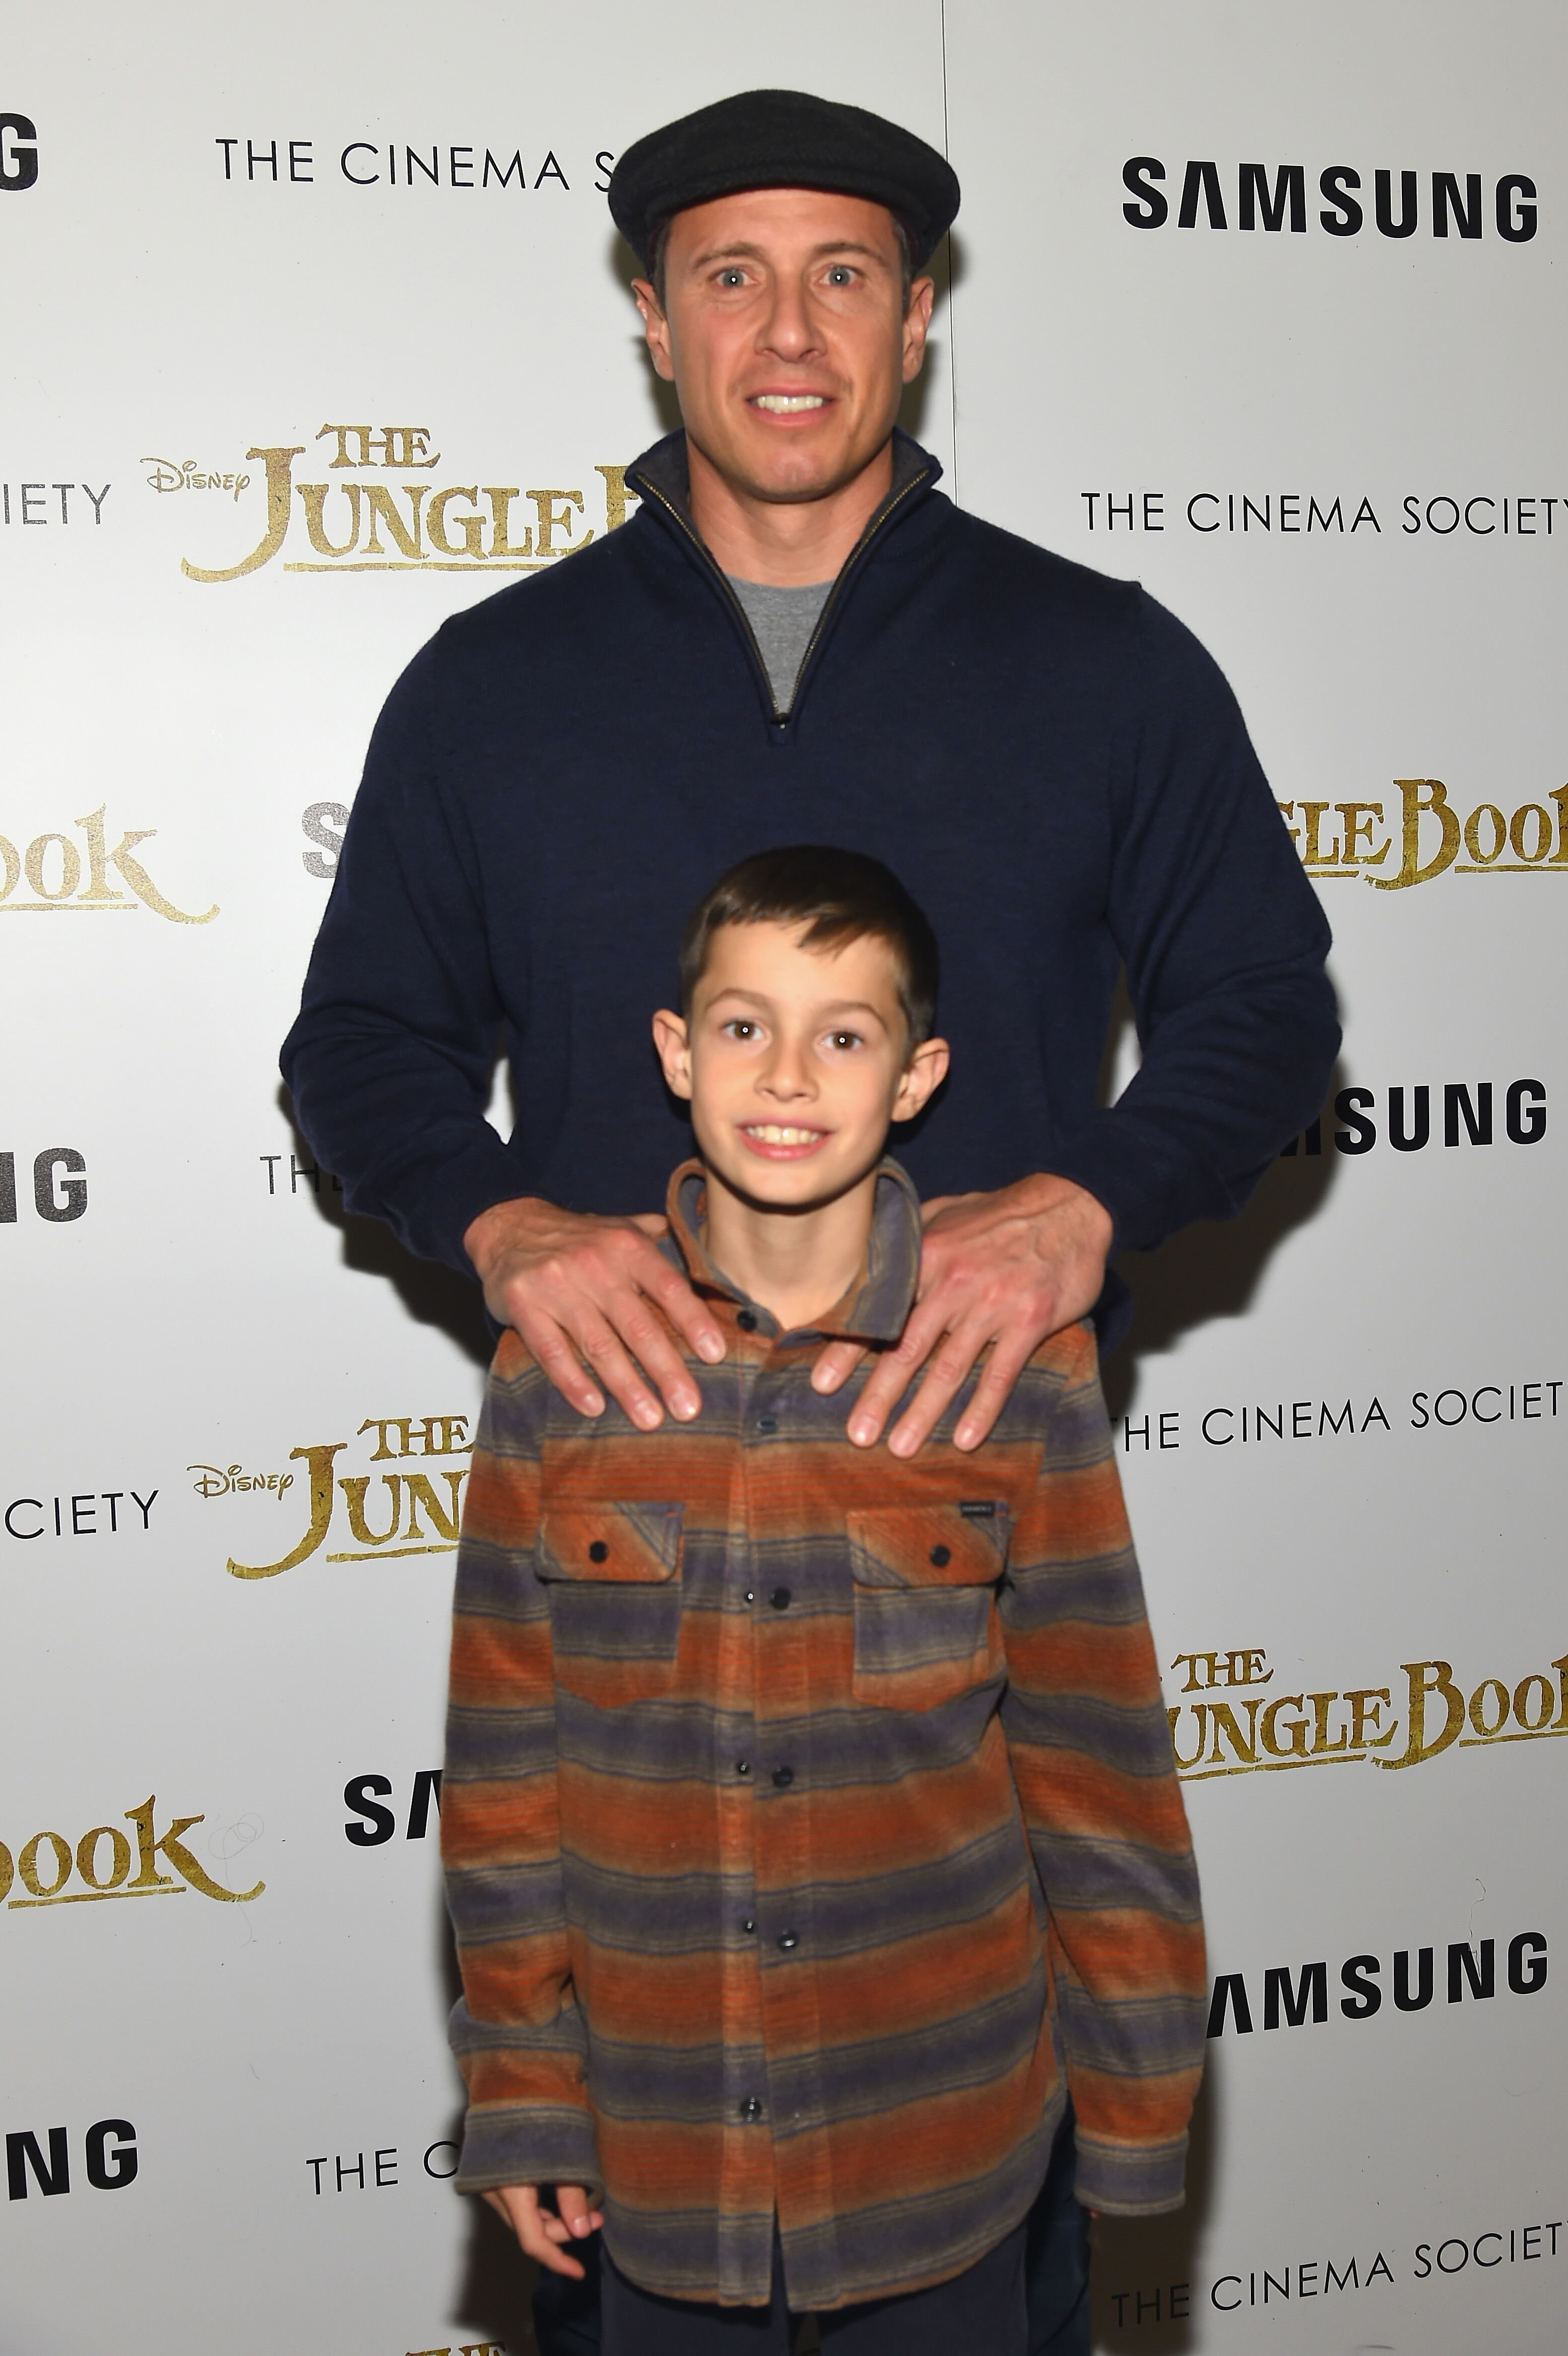 """Chris and son Mario Cuomo at the screening of """"The Jungle Book"""" at AMC Empire 25 theater on April 7, 2016, in New York City   Photo: Ben Gabbe/Getty Images"""